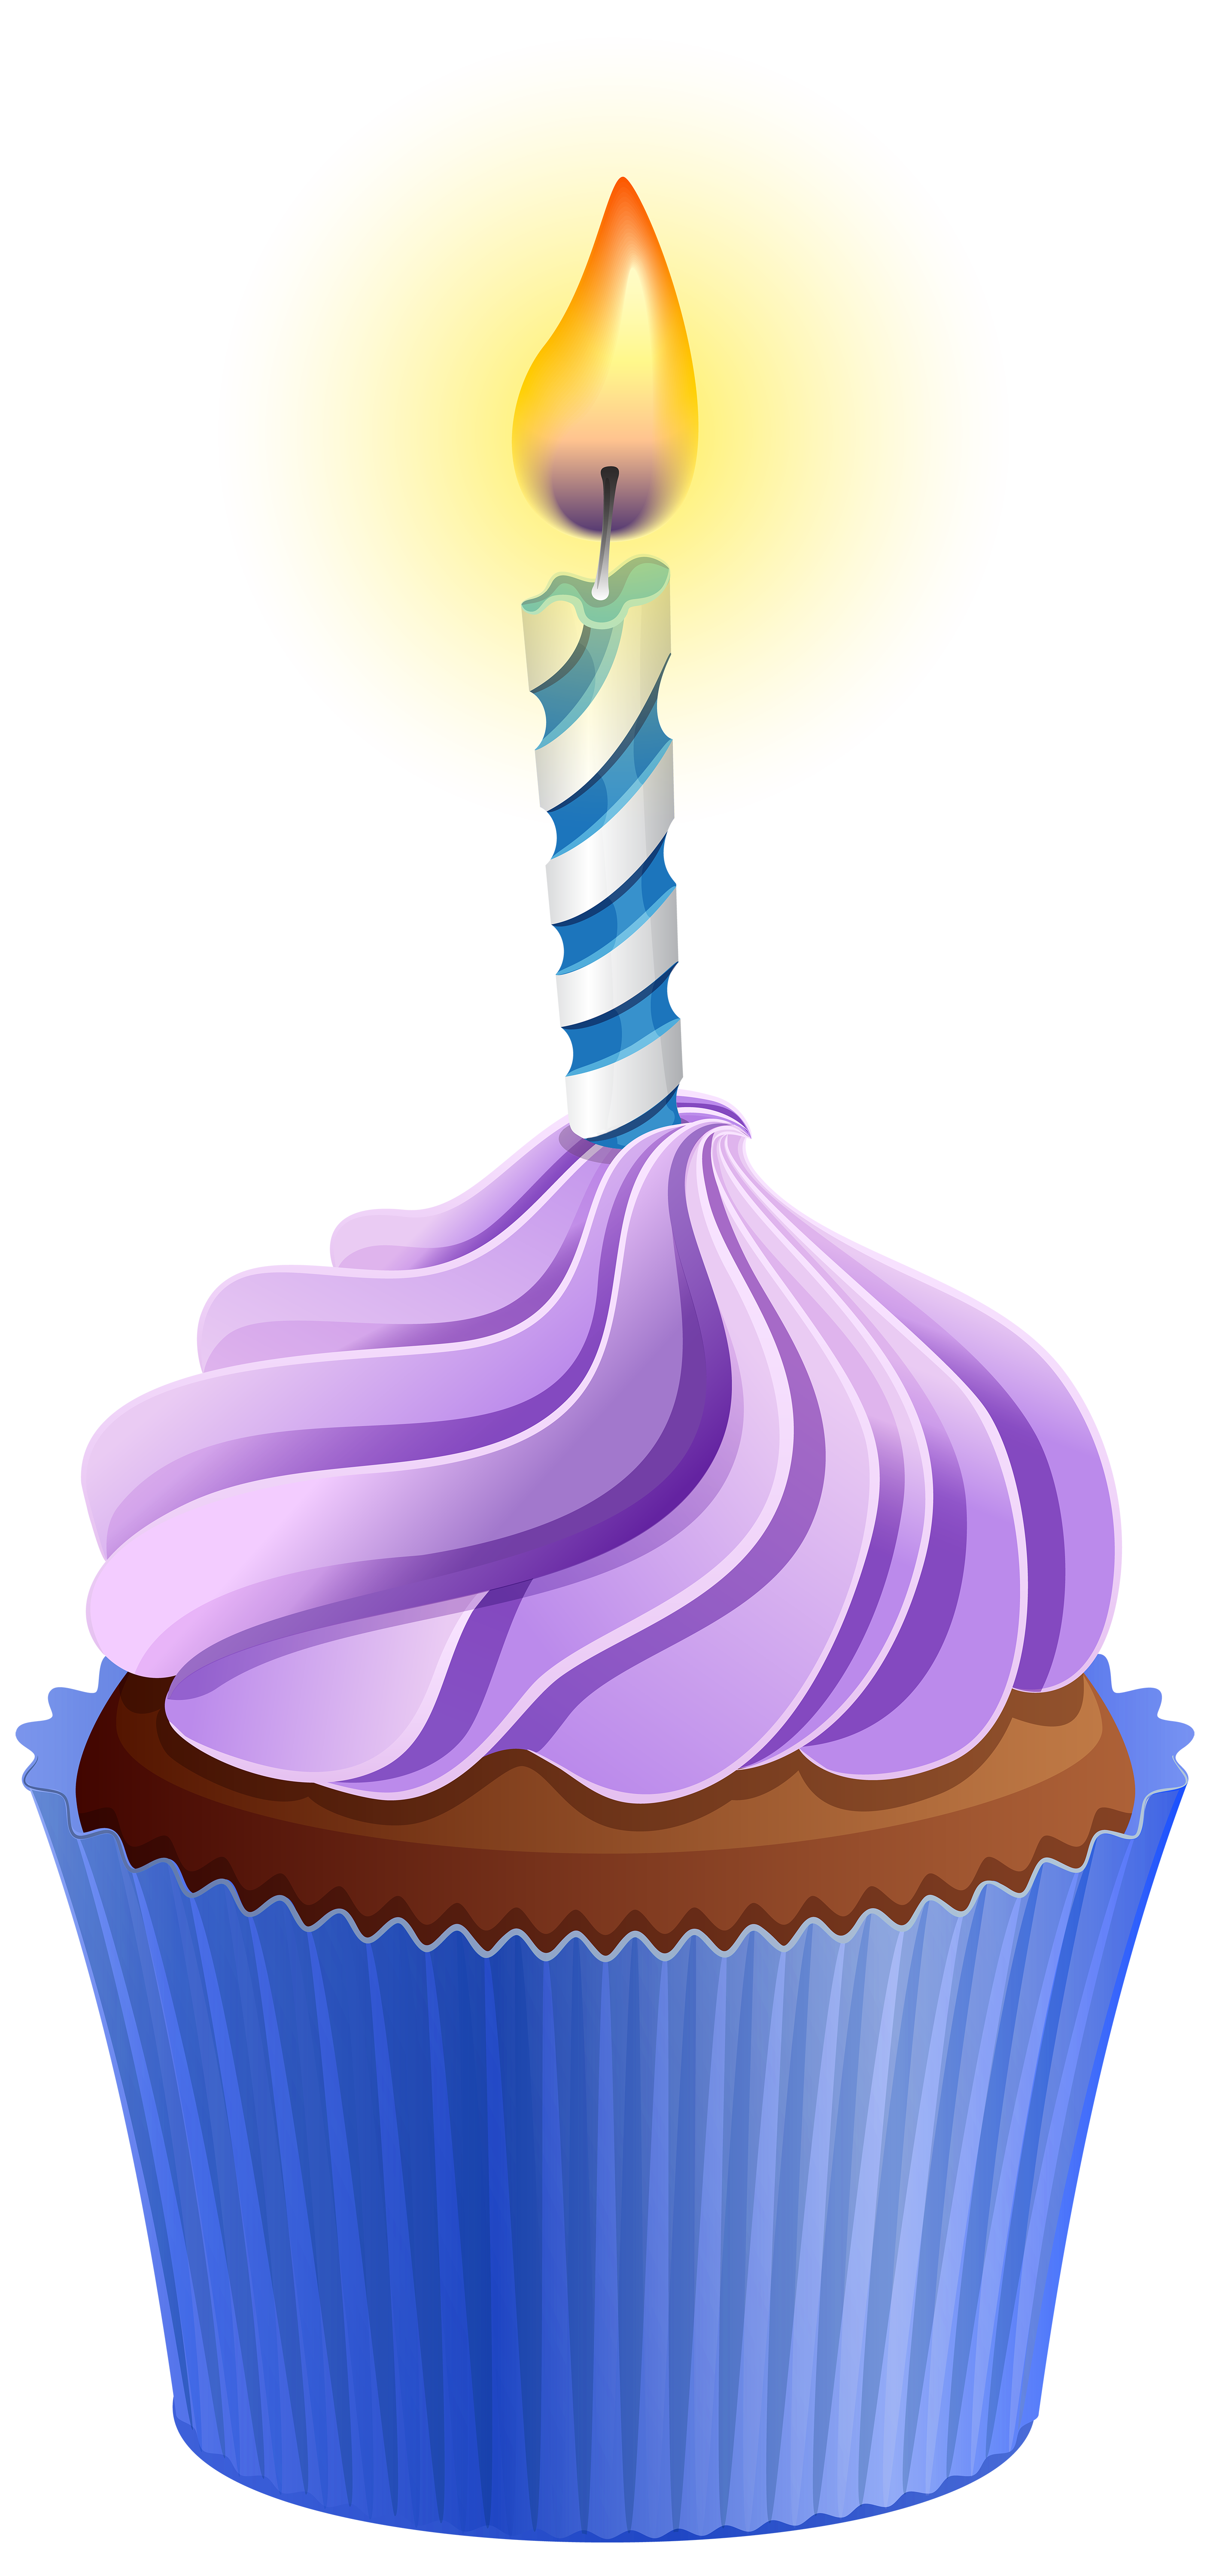 Birthday cupcake with candle. Clipart halloween cup cake